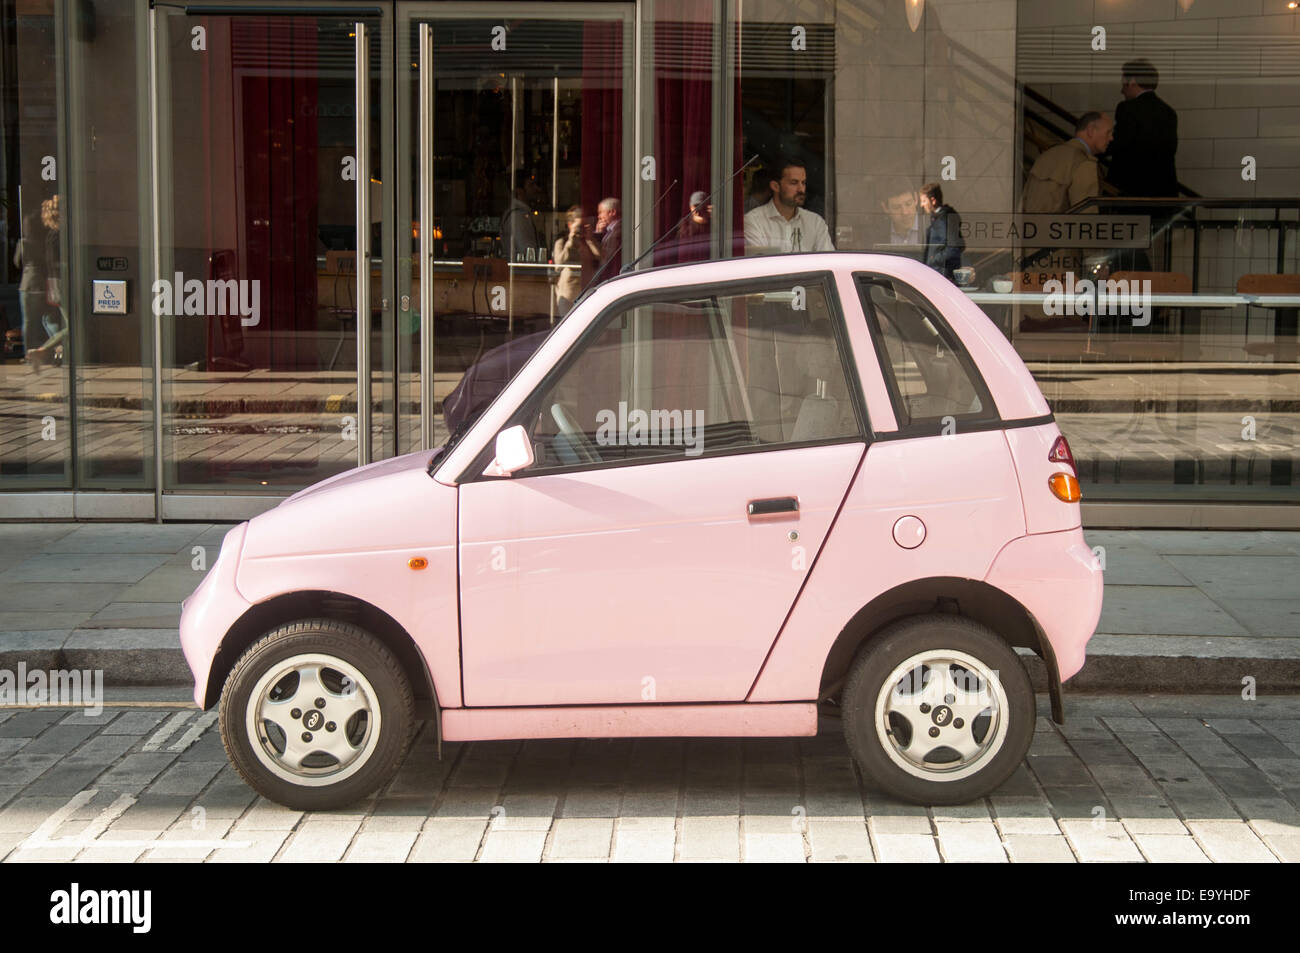 Pink Electric G Wiz Car Parked In A London Street Stock Photo